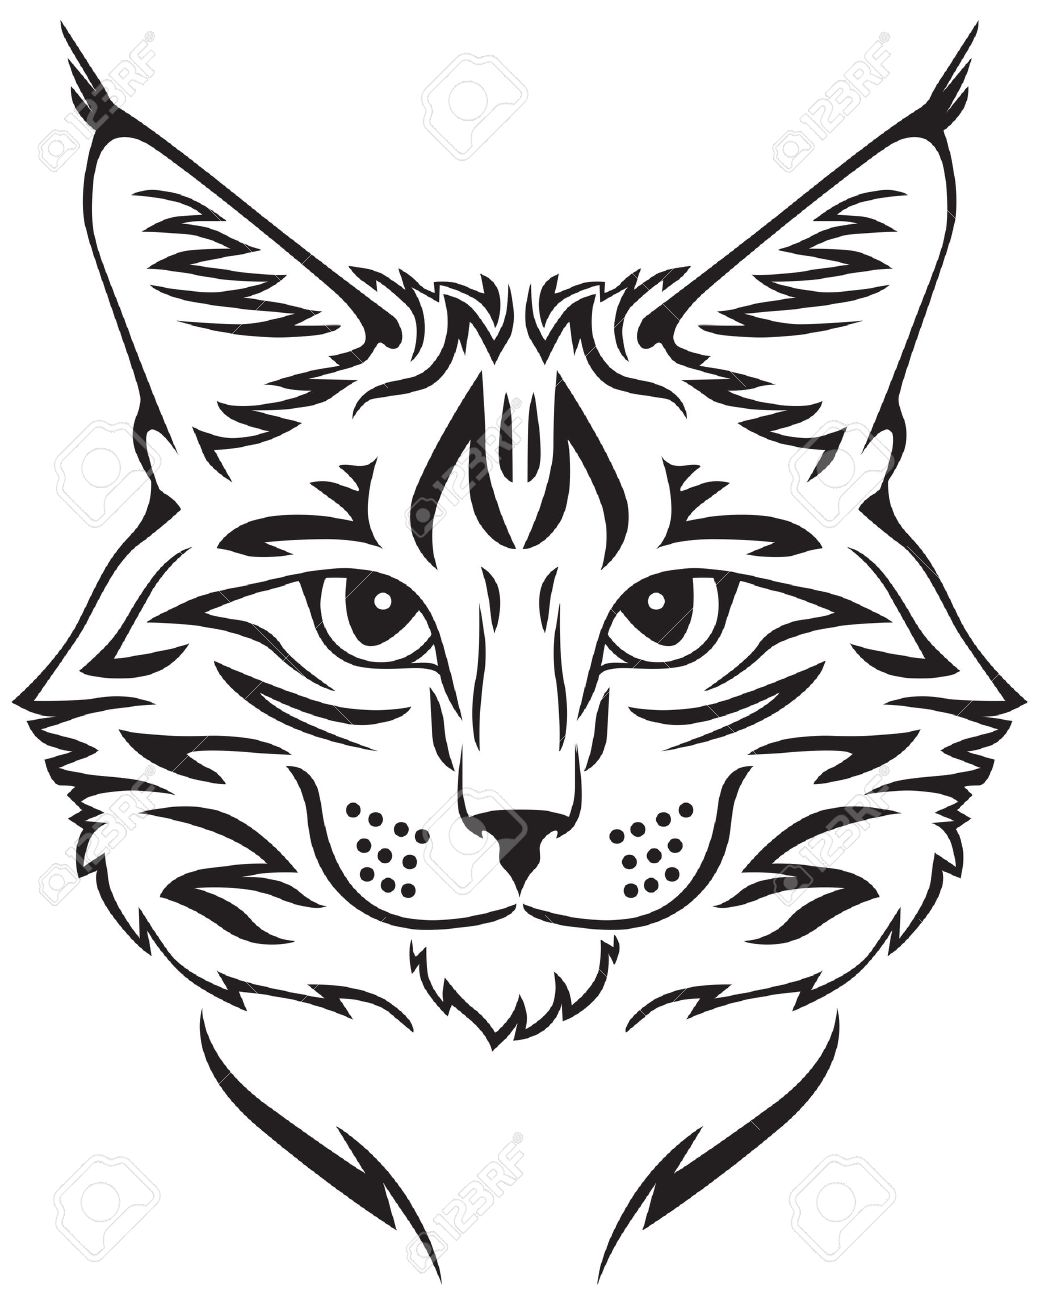 Search For Cat Drawing At Getdrawings